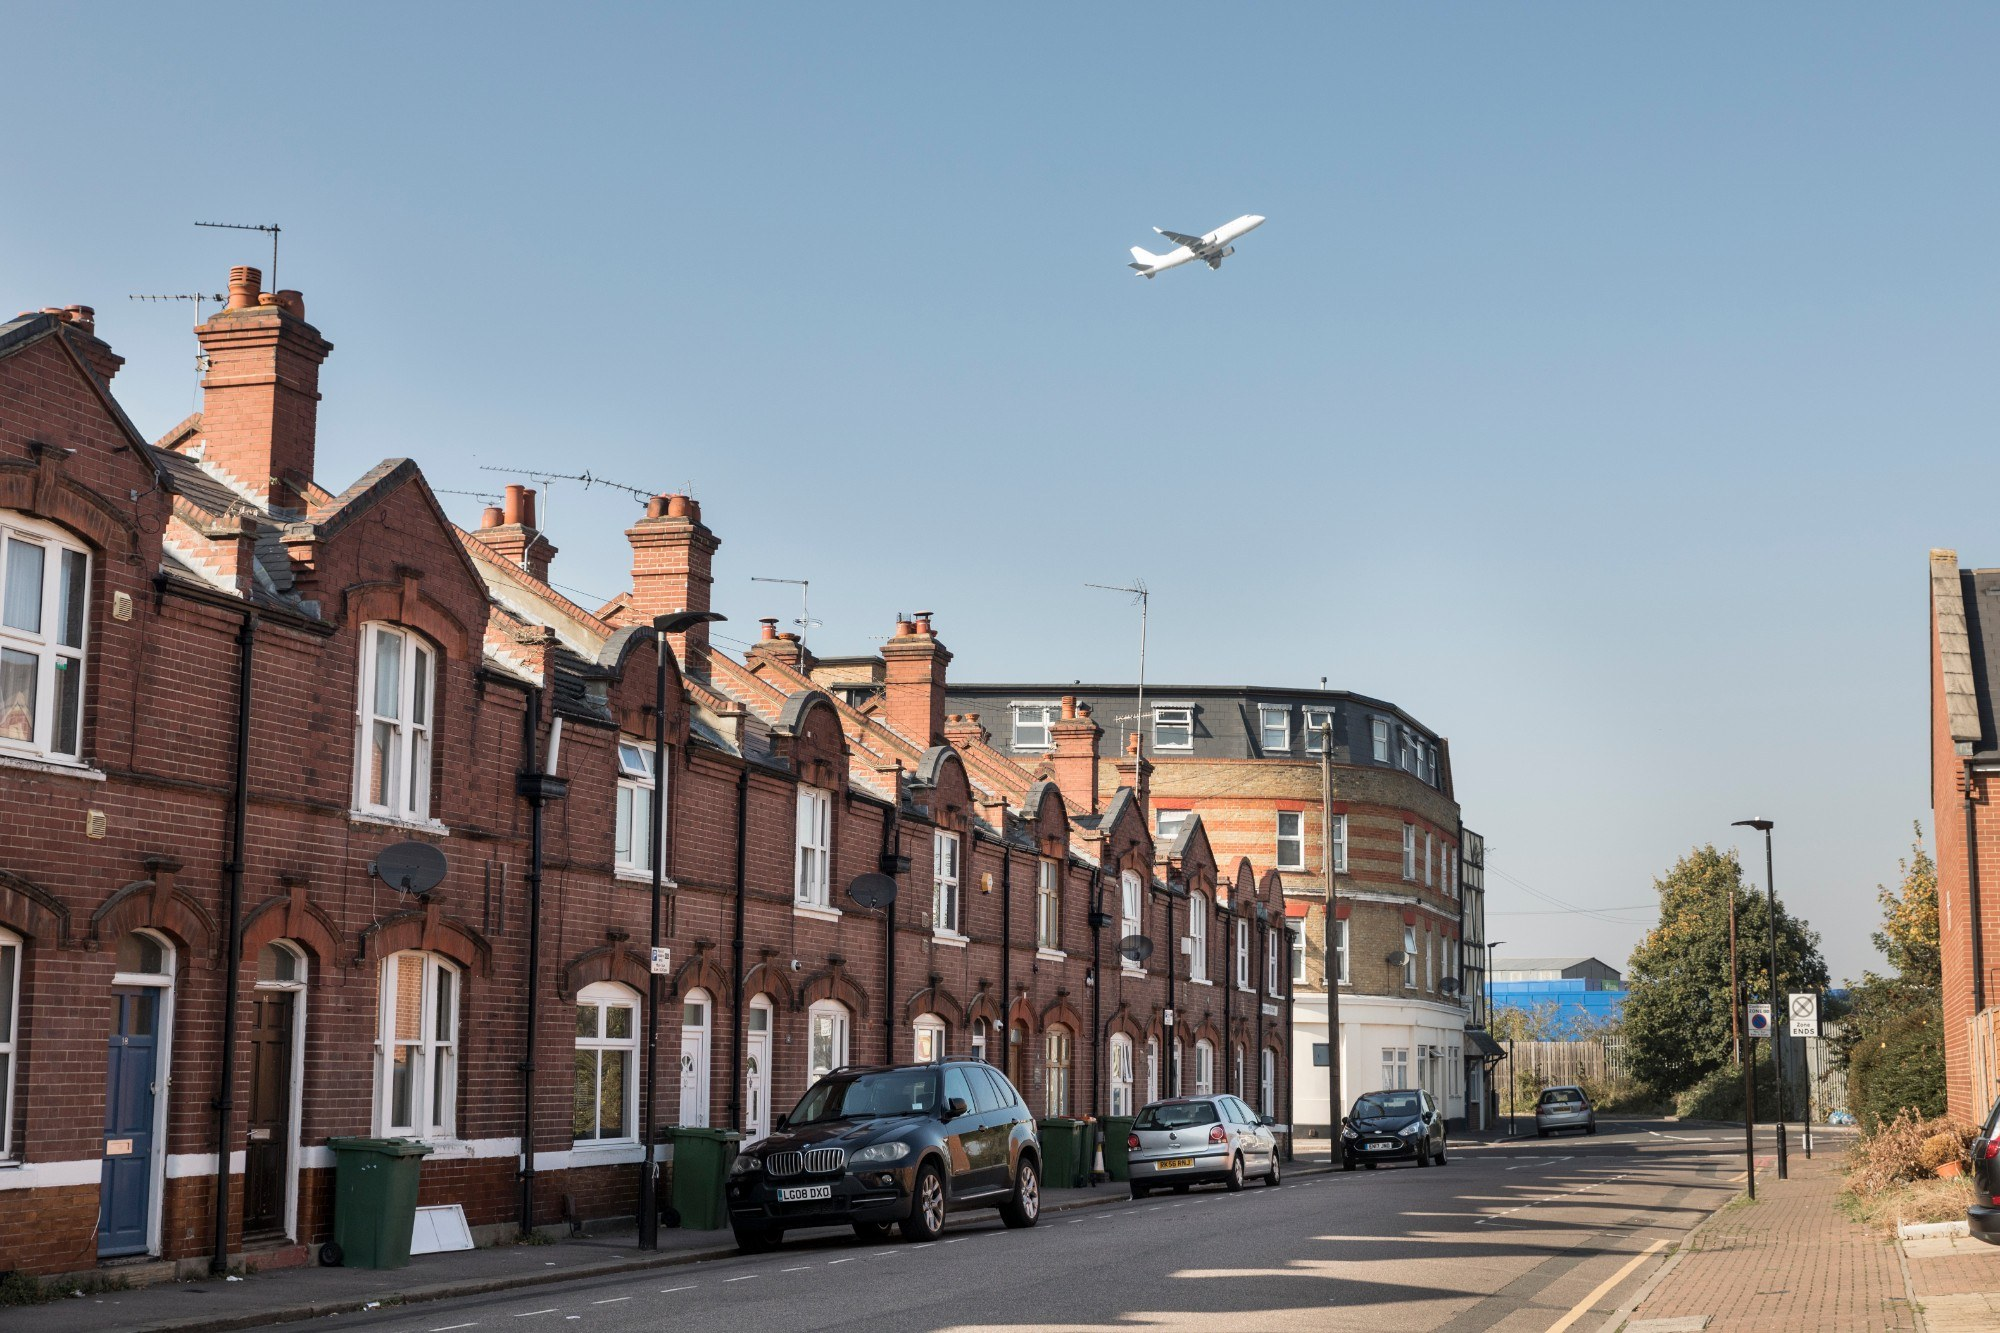 Barge House Road with a plane flying overhead